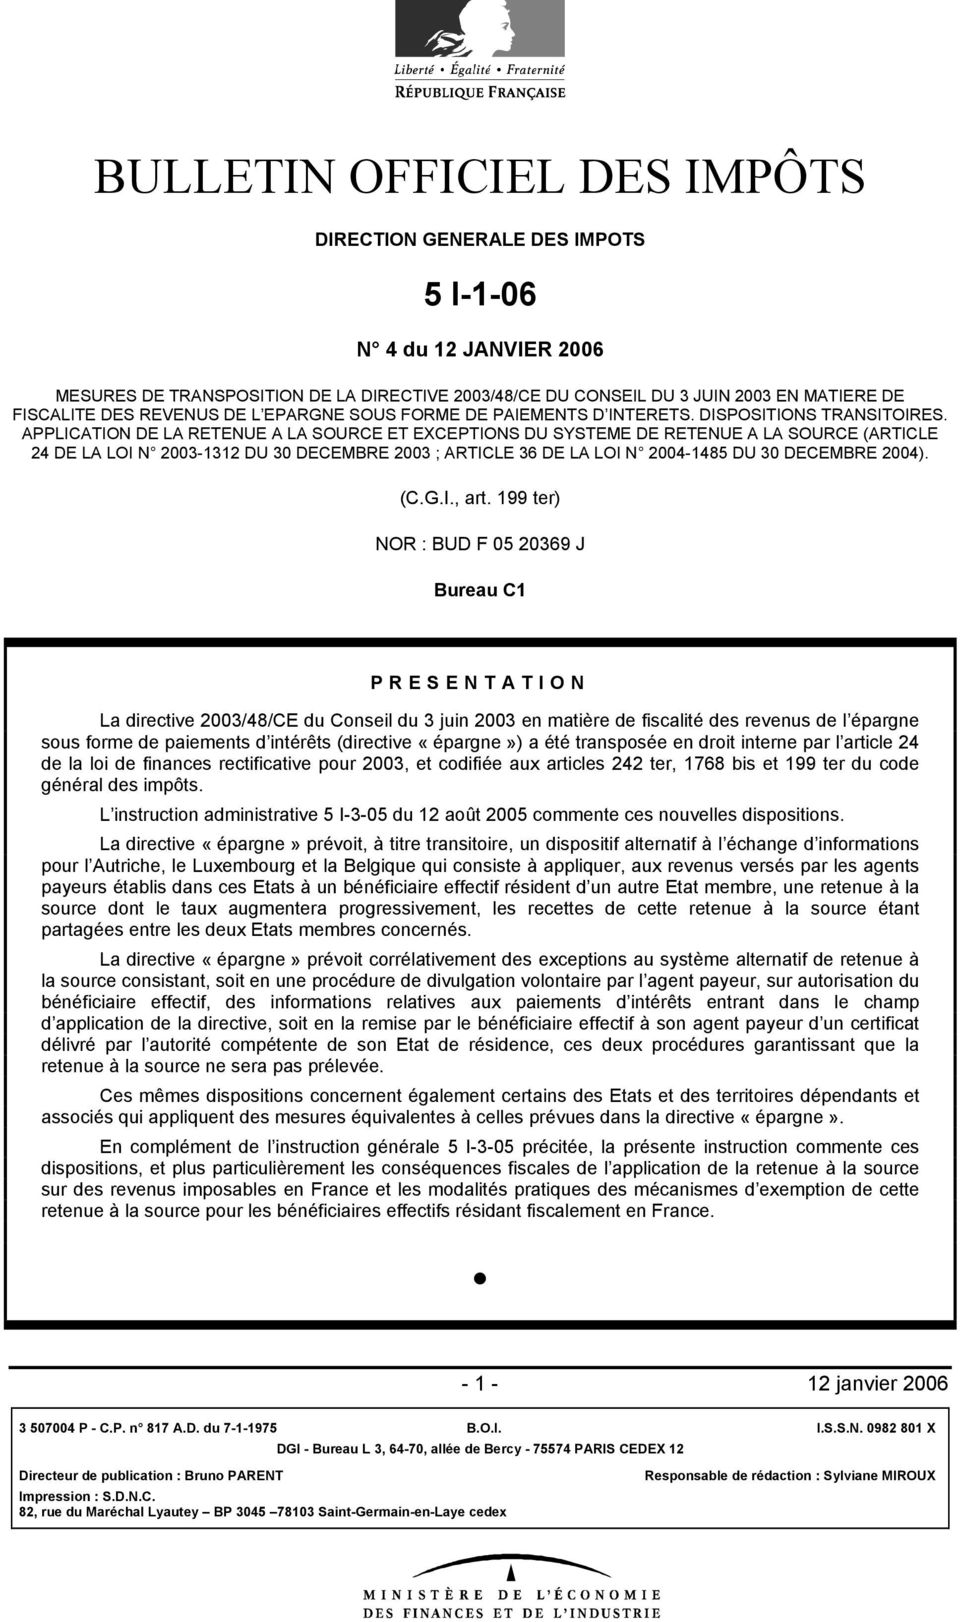 APPLICATION DE LA RETENUE A LA SOURCE ET EXCEPTIONS DU SYSTEME DE RETENUE A LA SOURCE (ARTICLE 24 DE LA LOI N 2003-1312 DU 30 DECEMBRE 2003 ; ARTICLE 36 DE LA LOI N 2004-1485 DU 30 DECEMBRE 2004). (C.